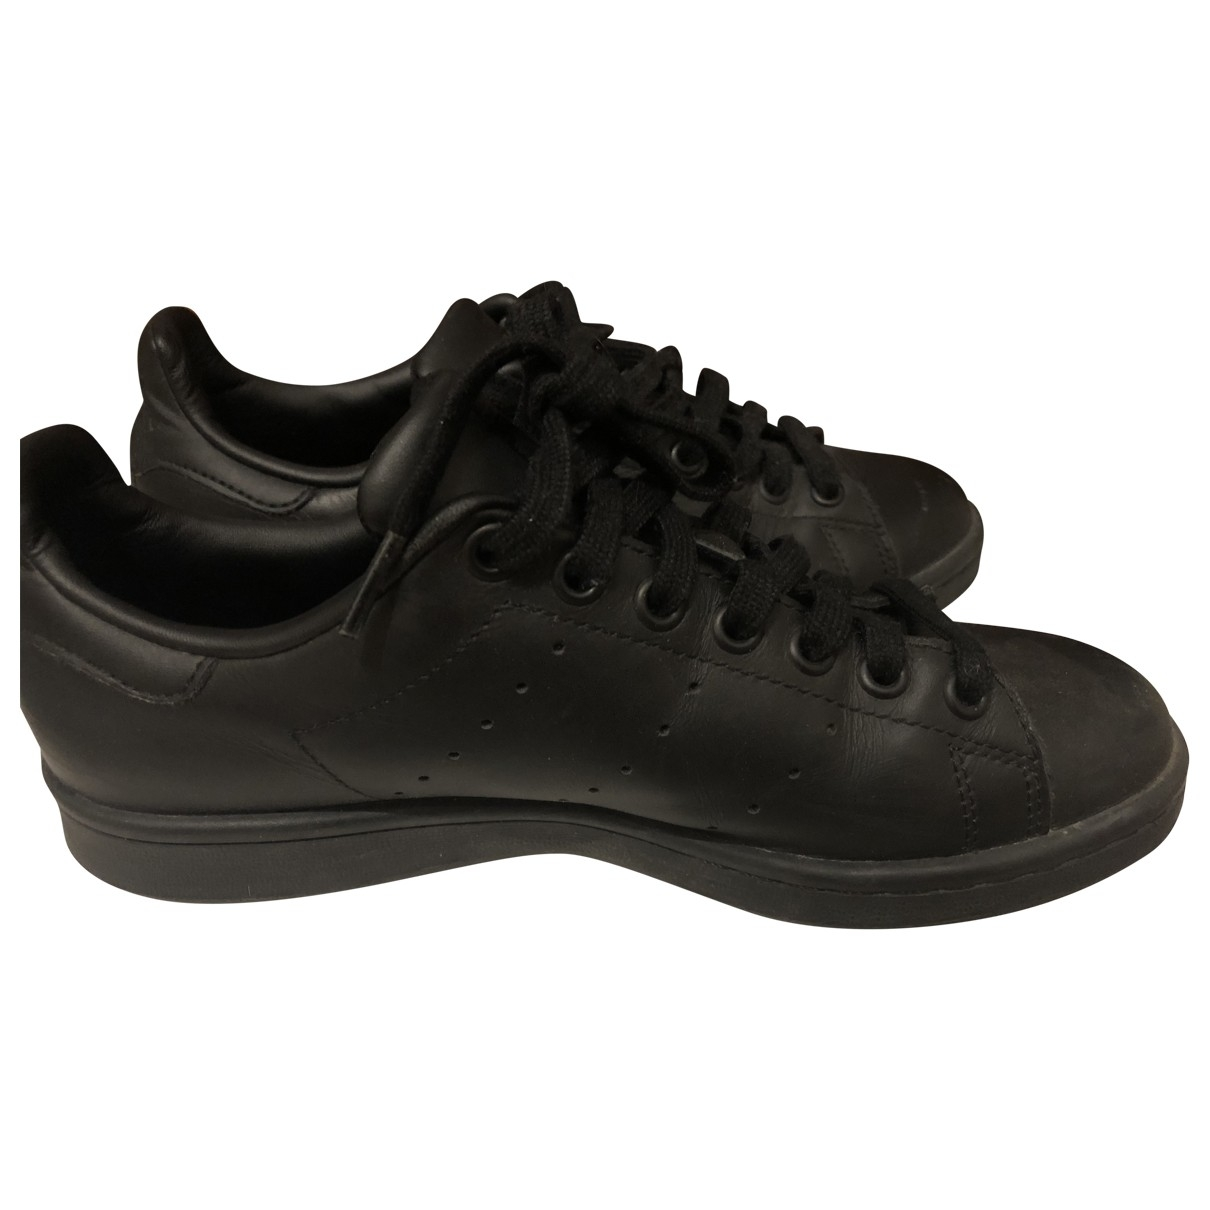 Adidas Stan Smith Black Leather Trainers for Women 38 EU